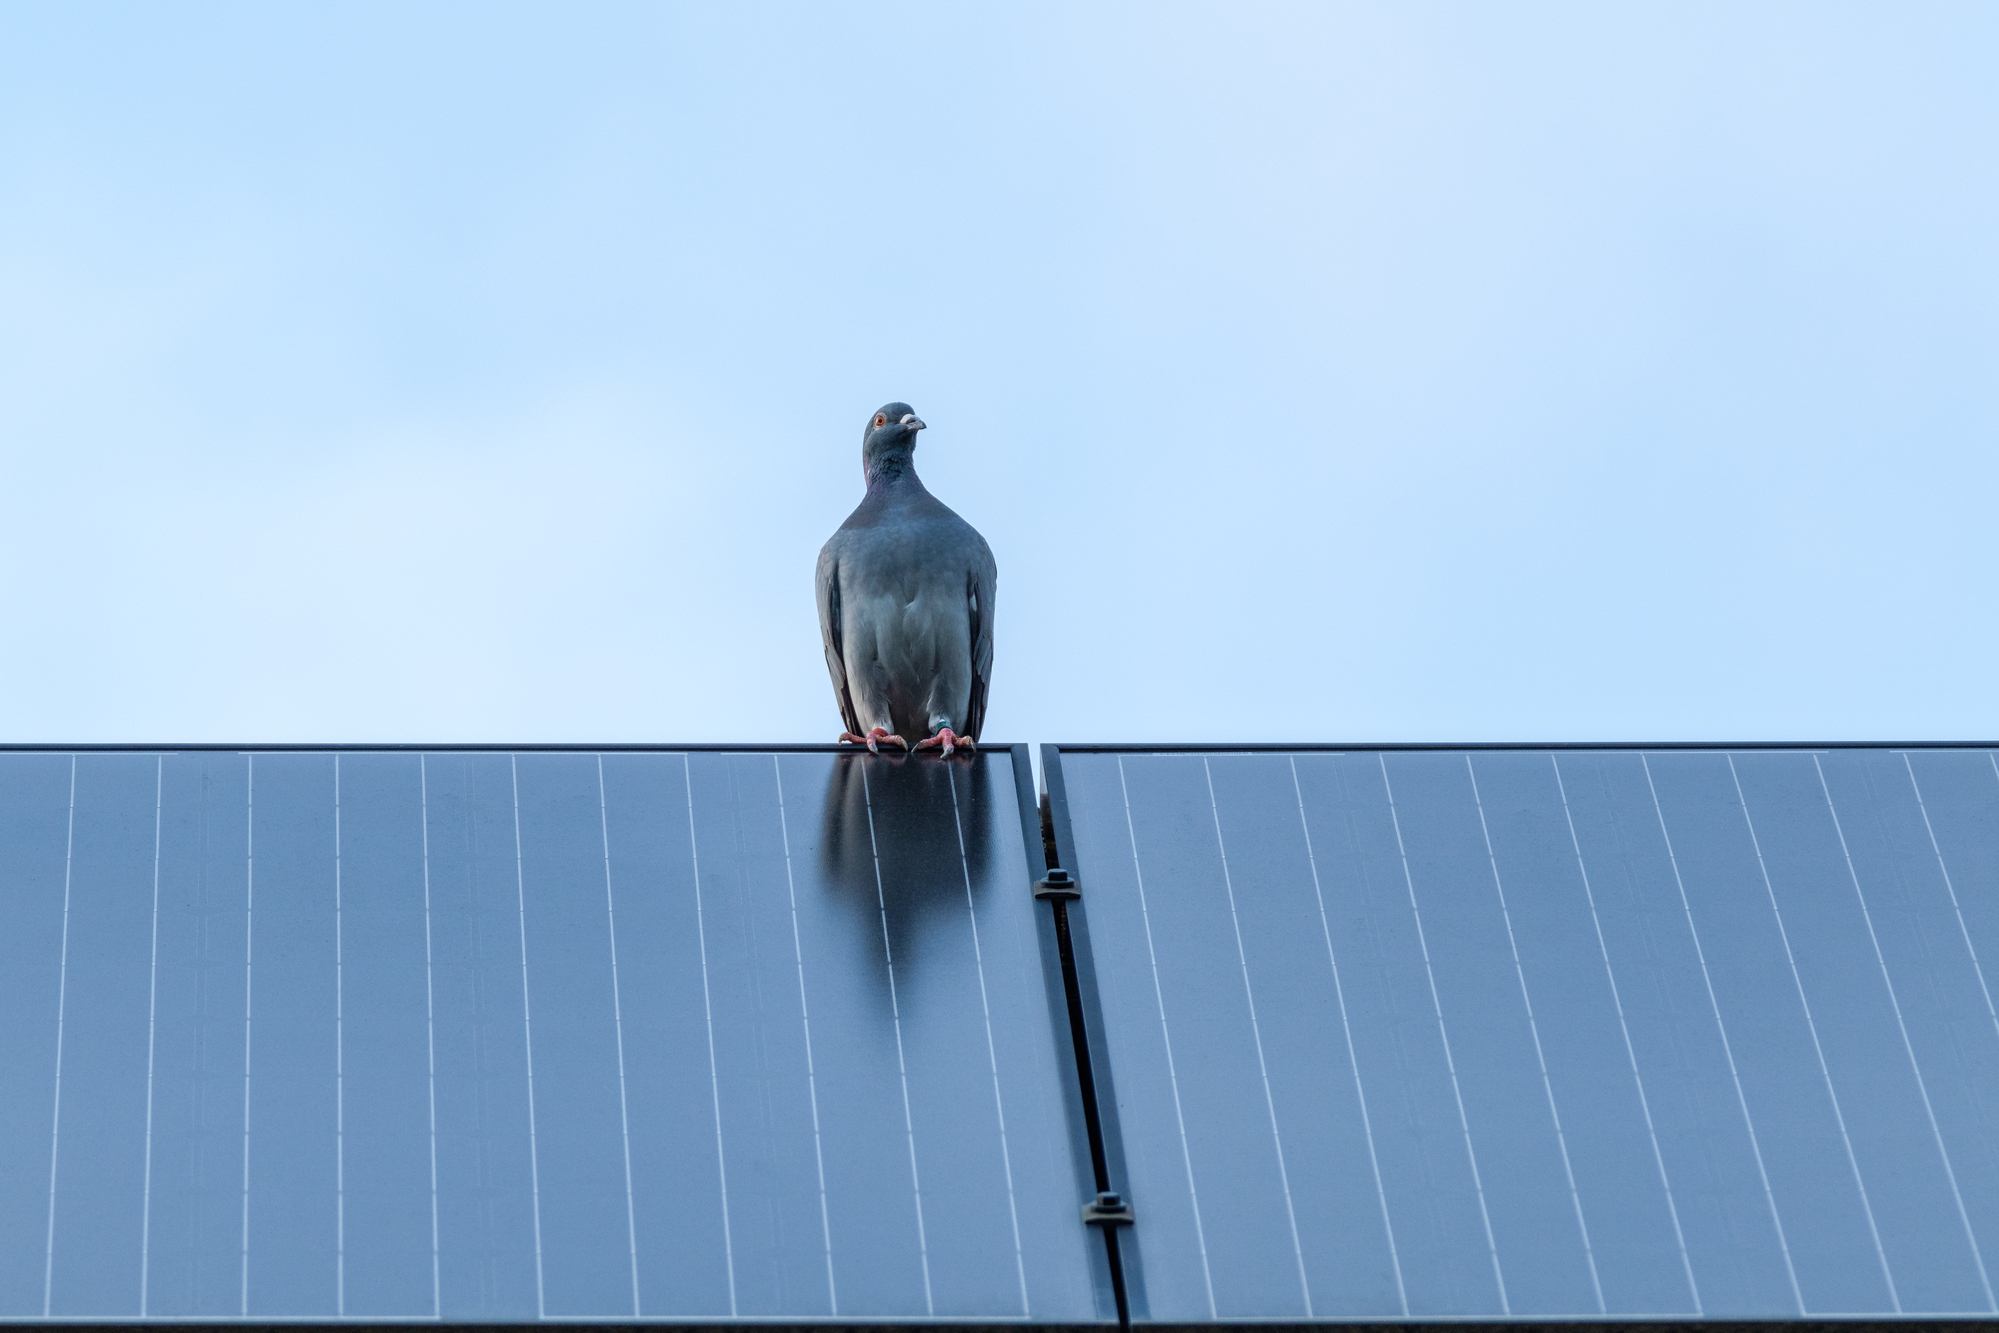 Homing pigeon on solar panel at the top of the roof.